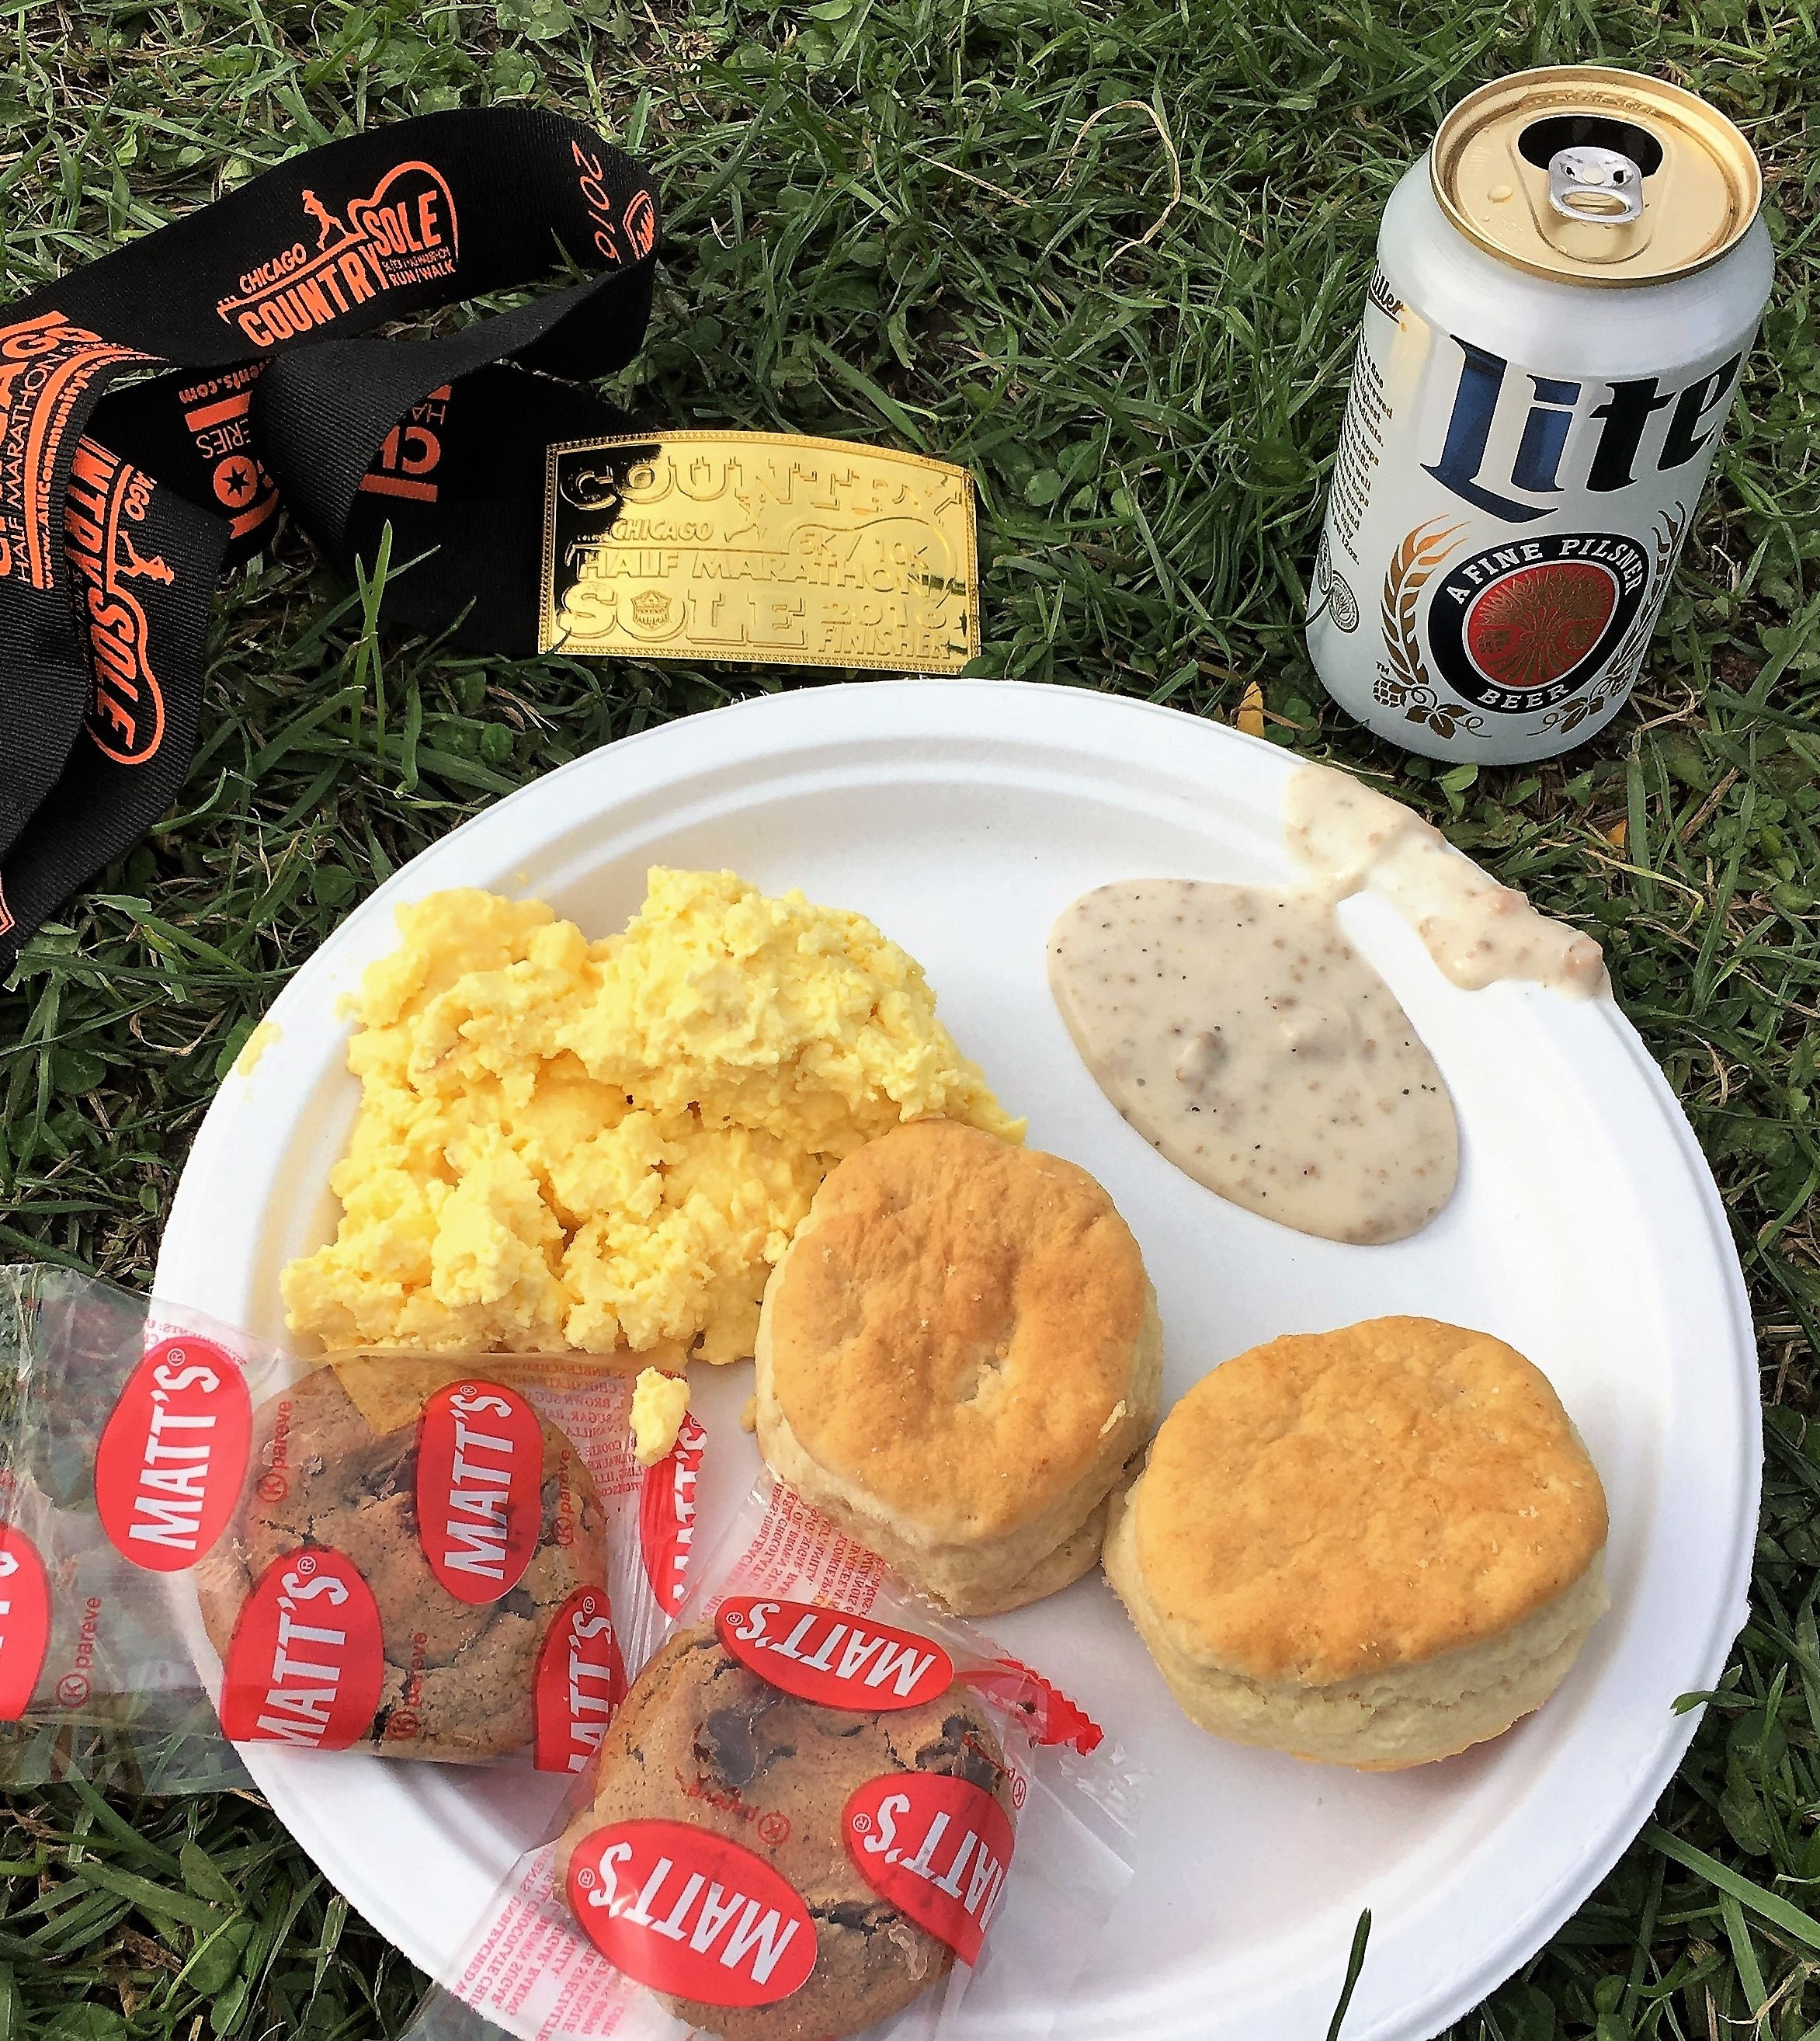 Nothing Says Country Like Beer, Biscuits and Grave, and a Belt Buckle to Boot!